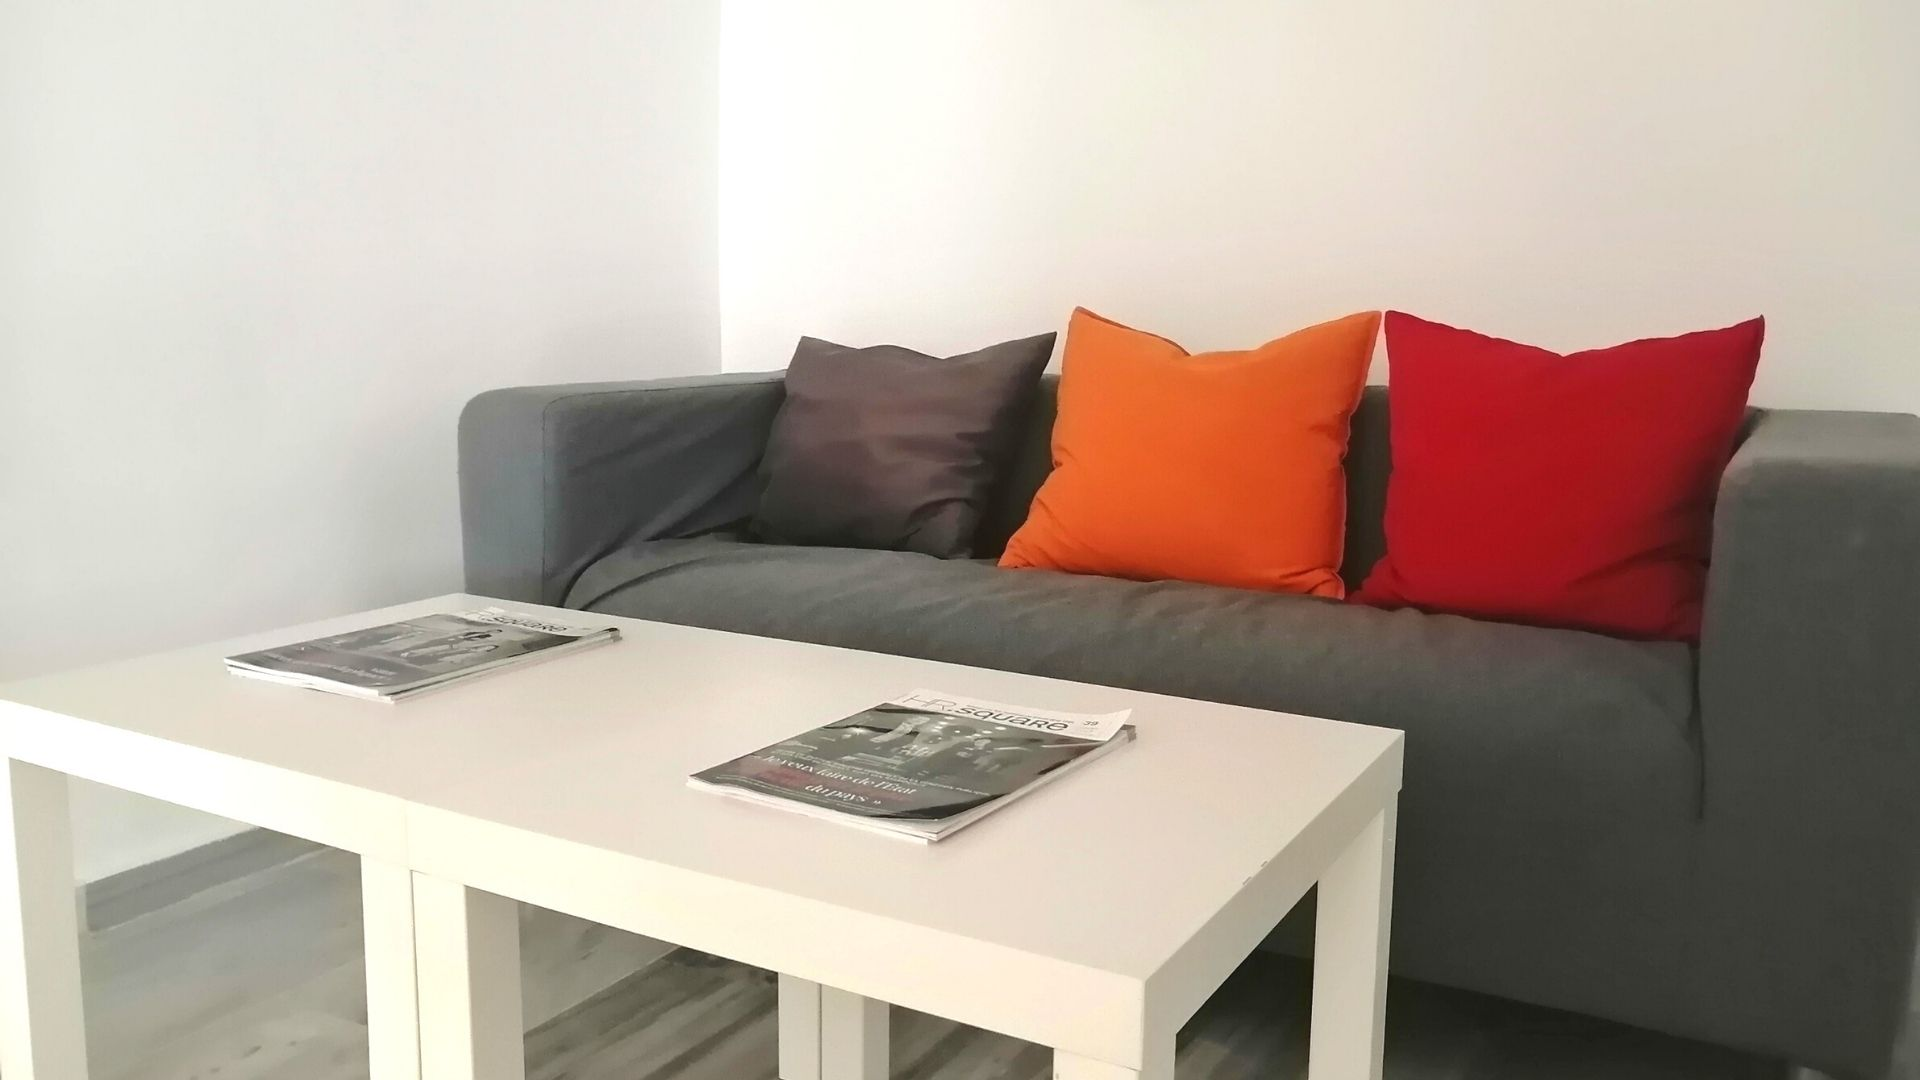 Our new Adessa office in Malaga is open! - waiting space